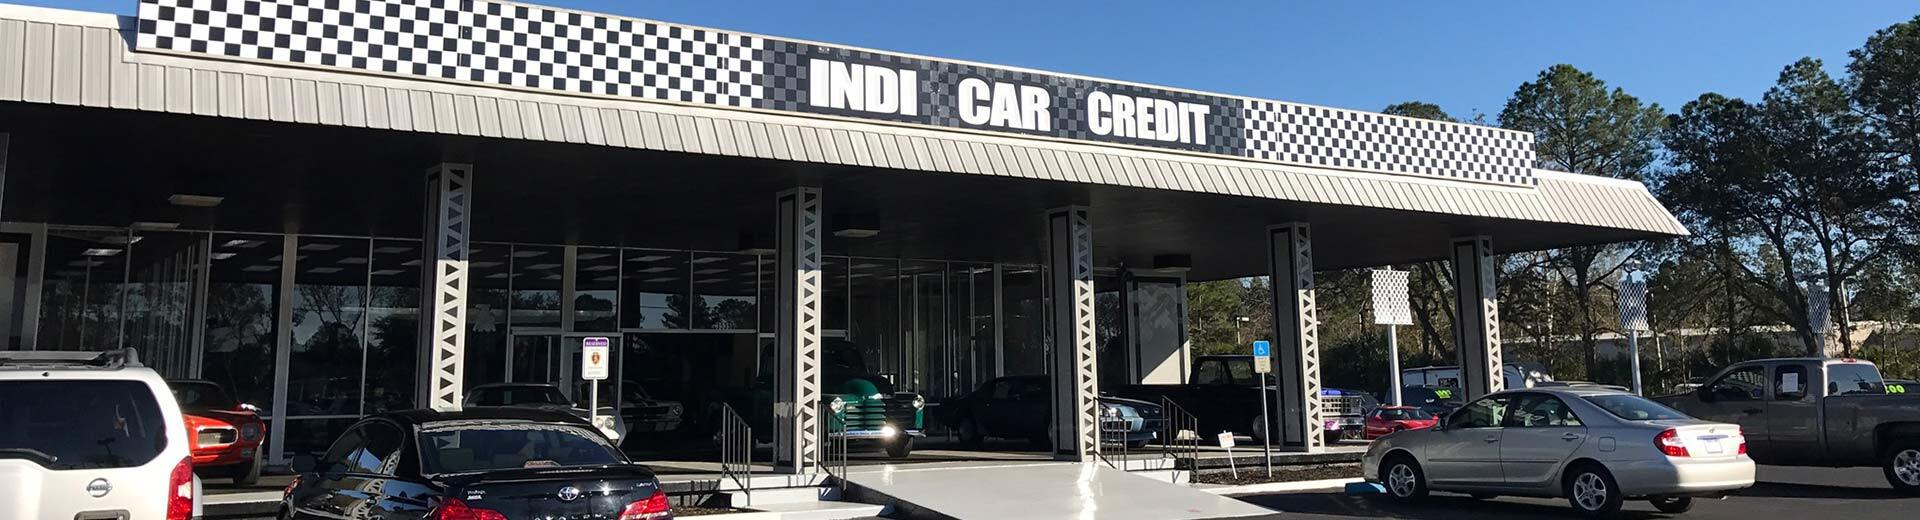 Used Cars at Indi Car Credit